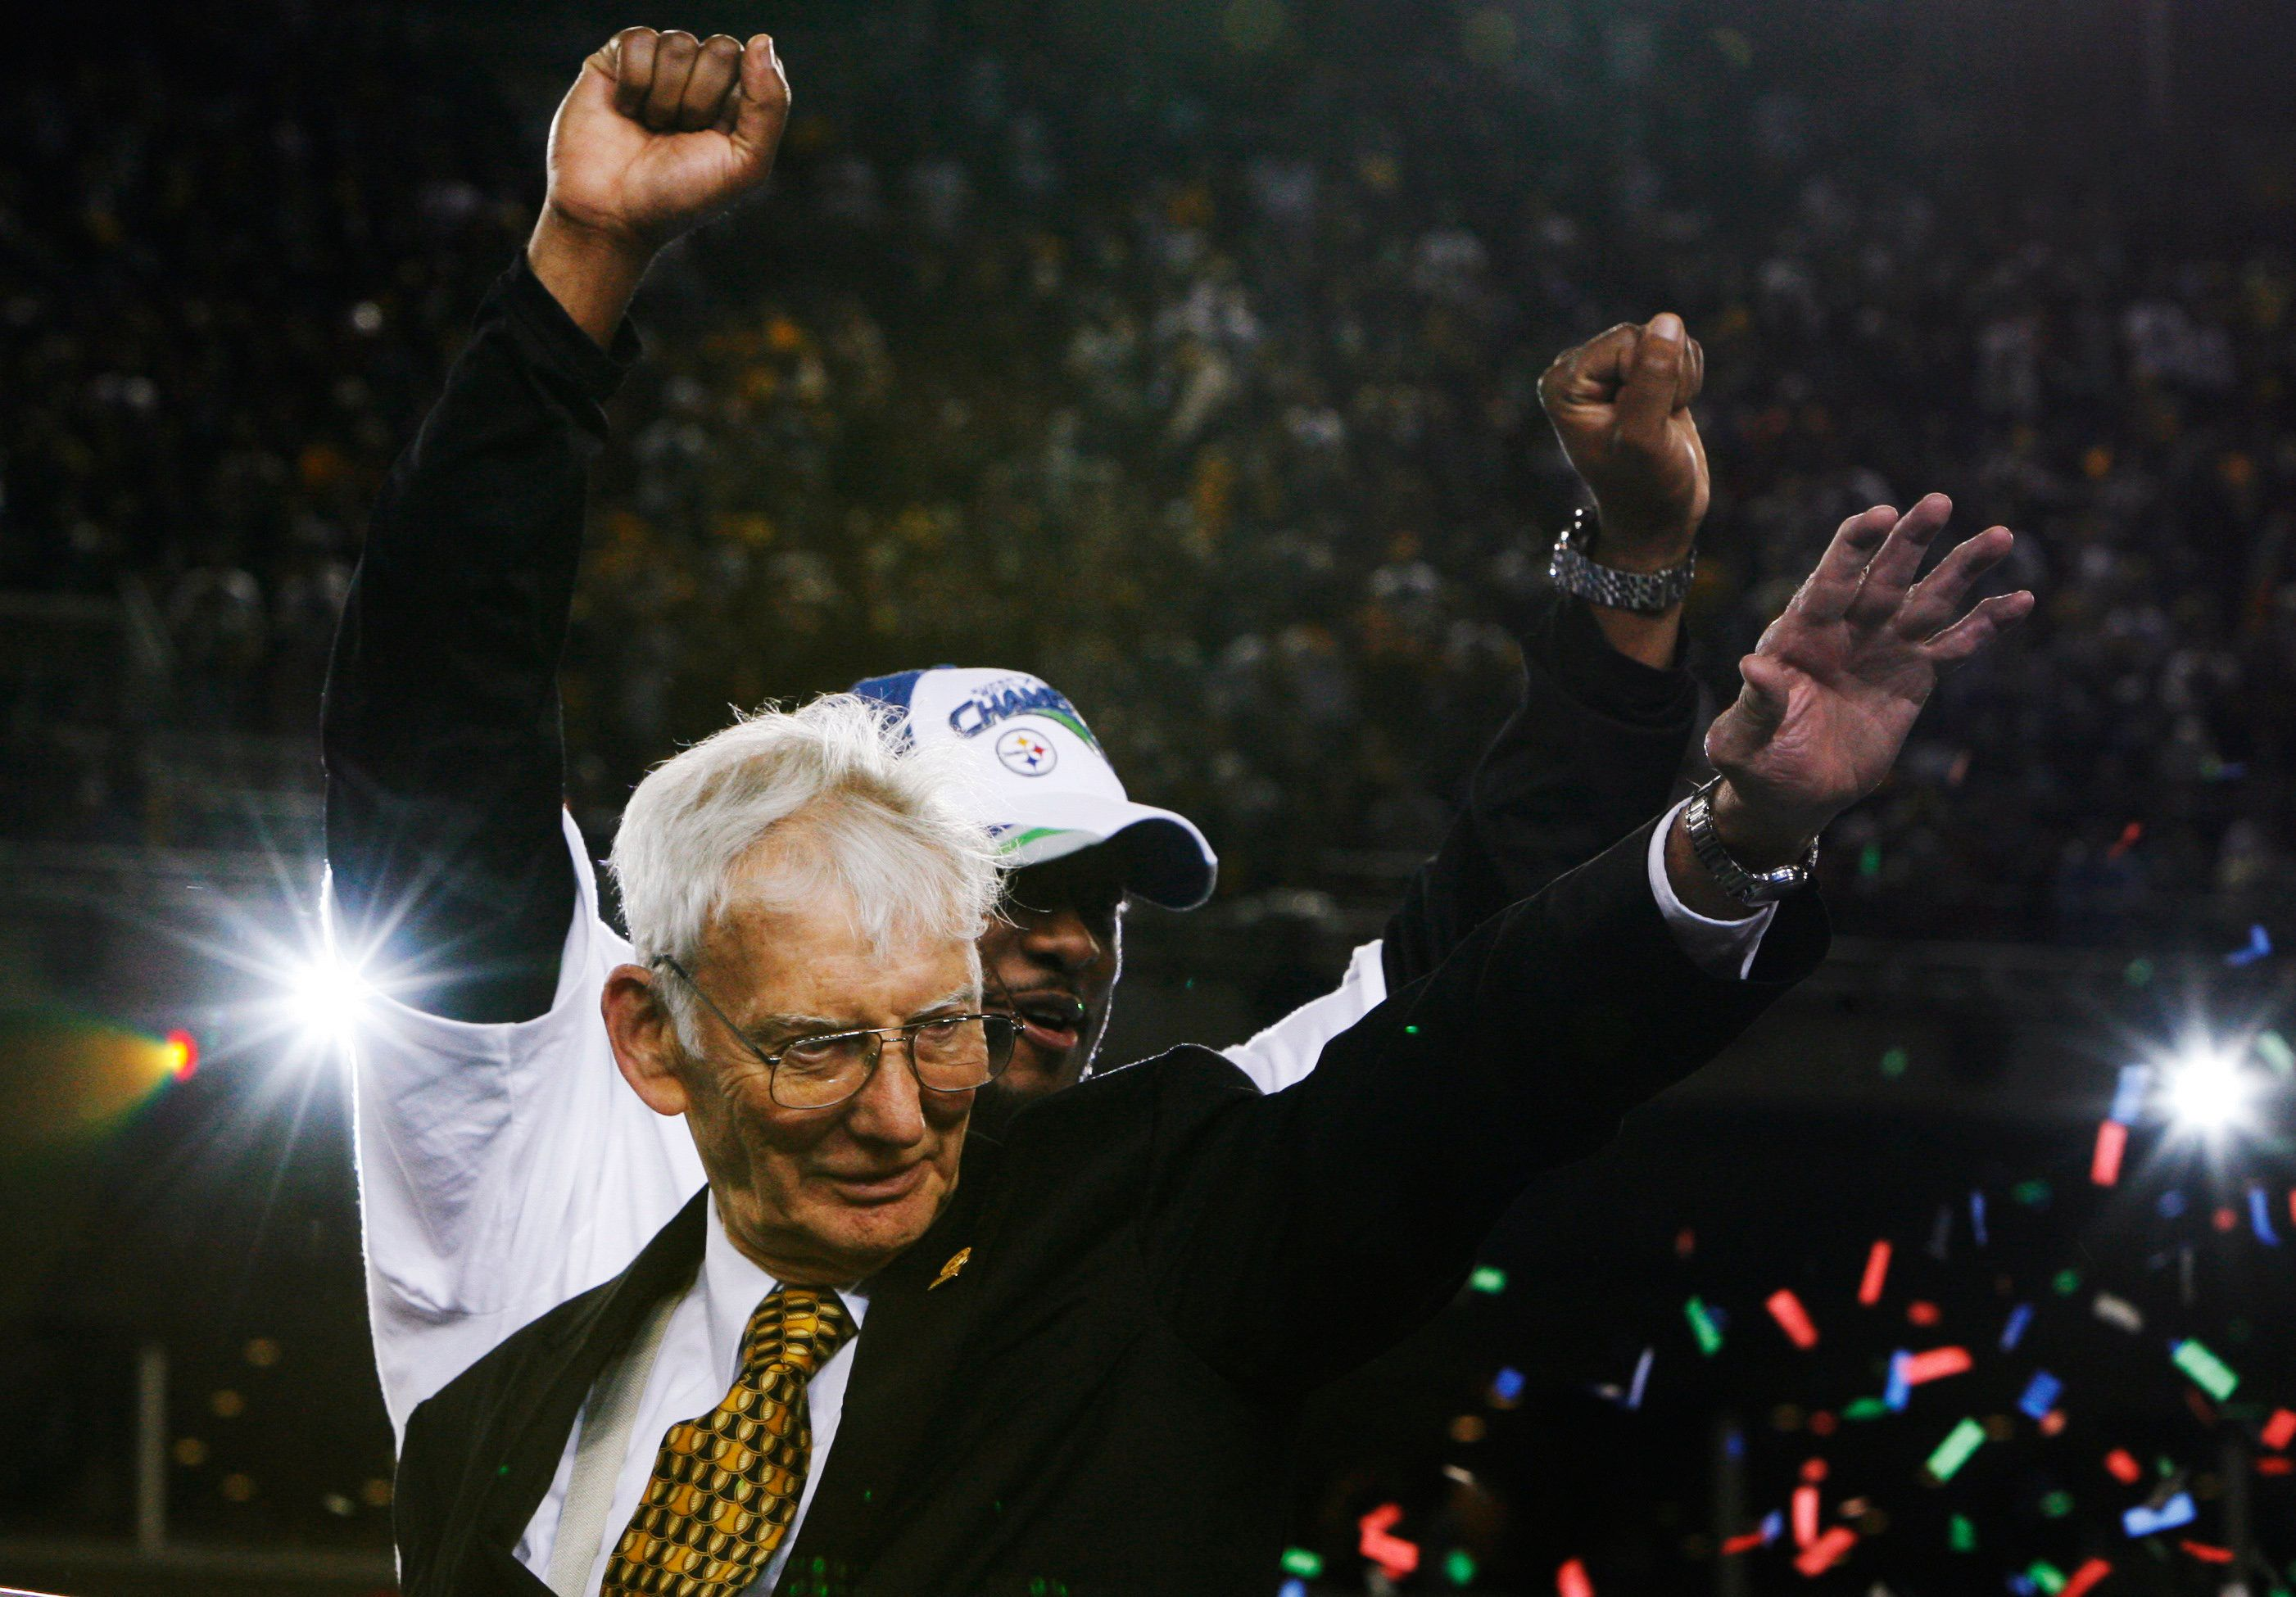 Pittsburgh Steelers owner Dan Rooney and coach Mike Tomlin (back) celebrate after their team defeated the Arizona Cardinals to win NFL's Super Bowl XLIII football game in Tampa, Florida February 1, 2009.     REUTERS/Jeff Haynes (UNITED STATES)